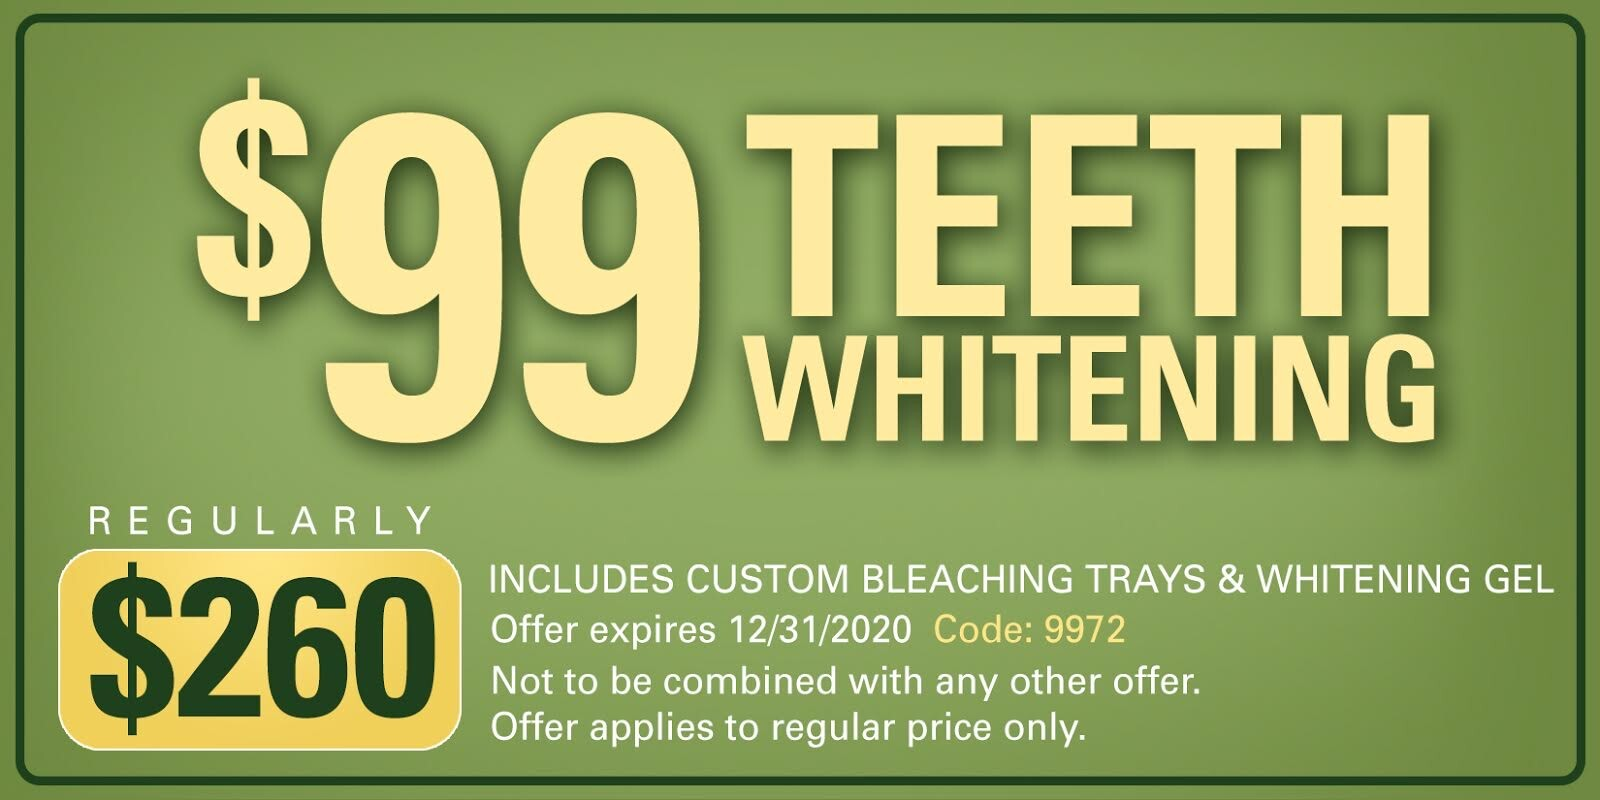 $99 teeth whitening